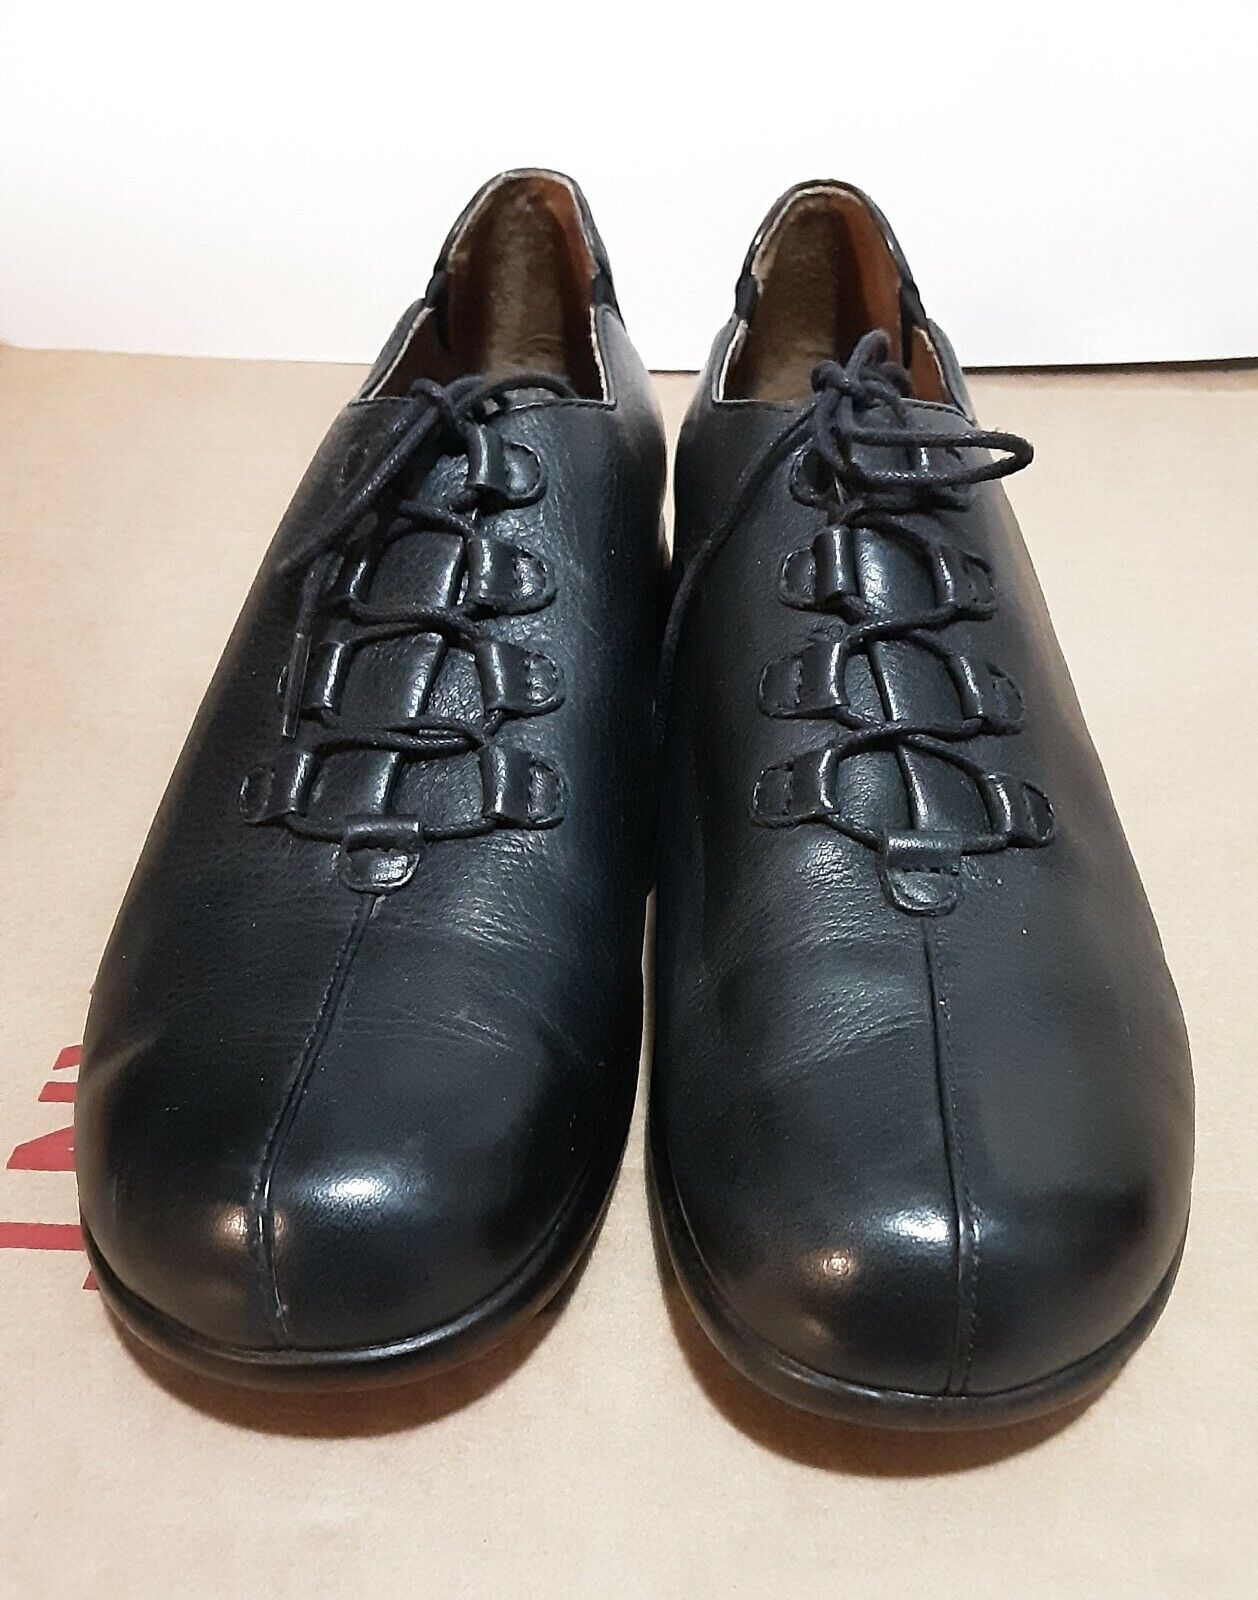 Ariat Miler Black Leather Shoes Style #20201